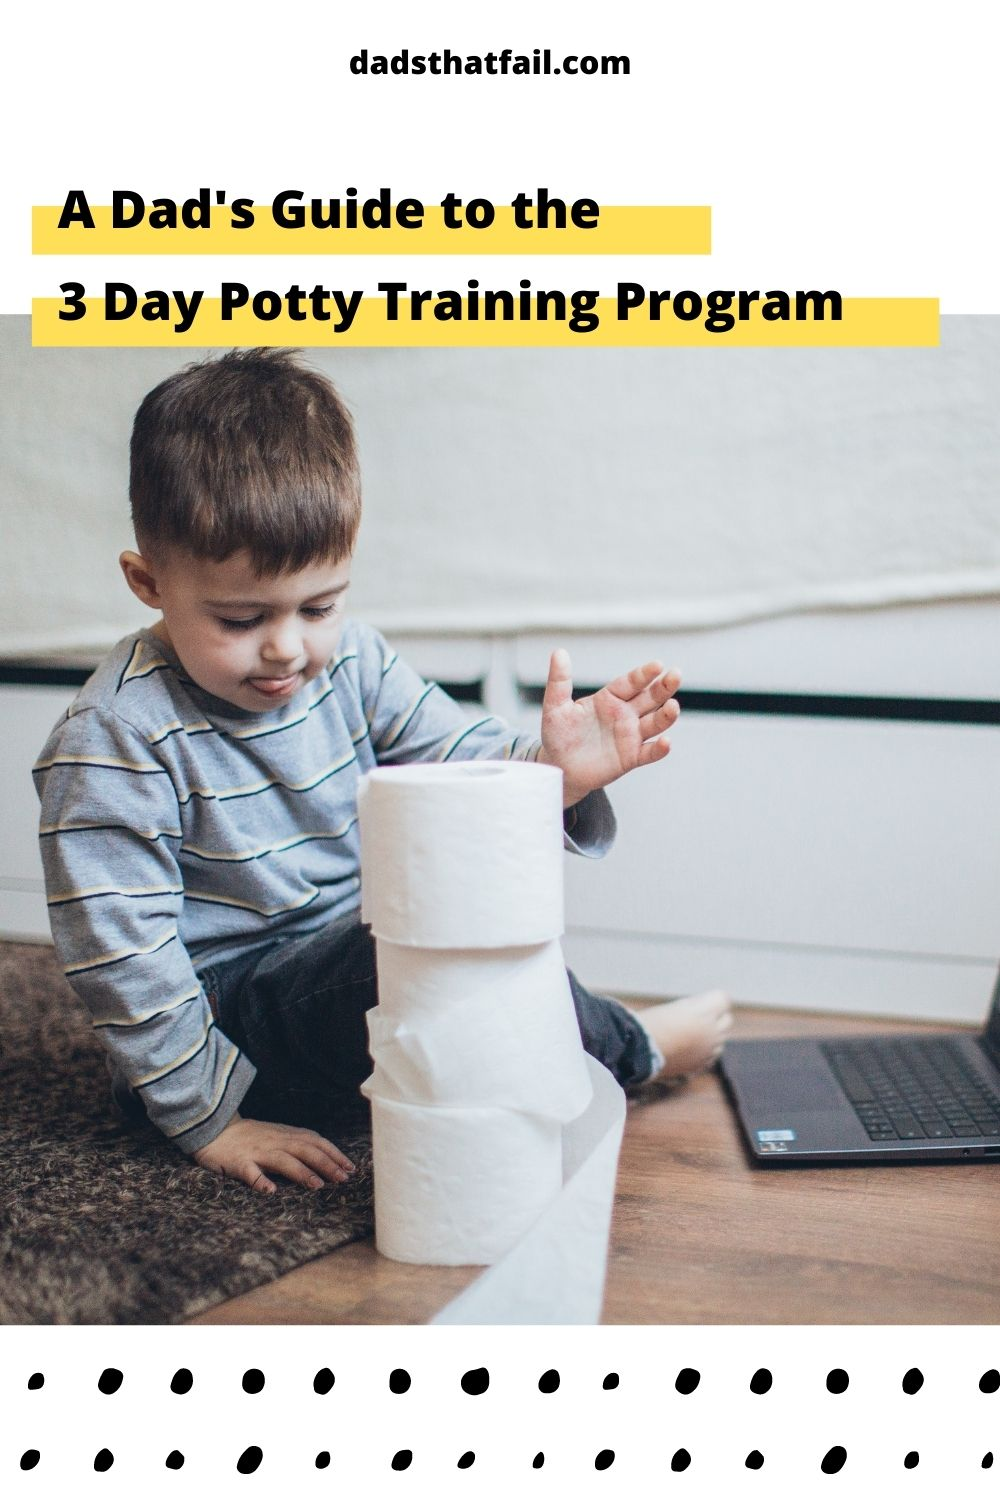 Cover image of toddler playing with toilet paper.